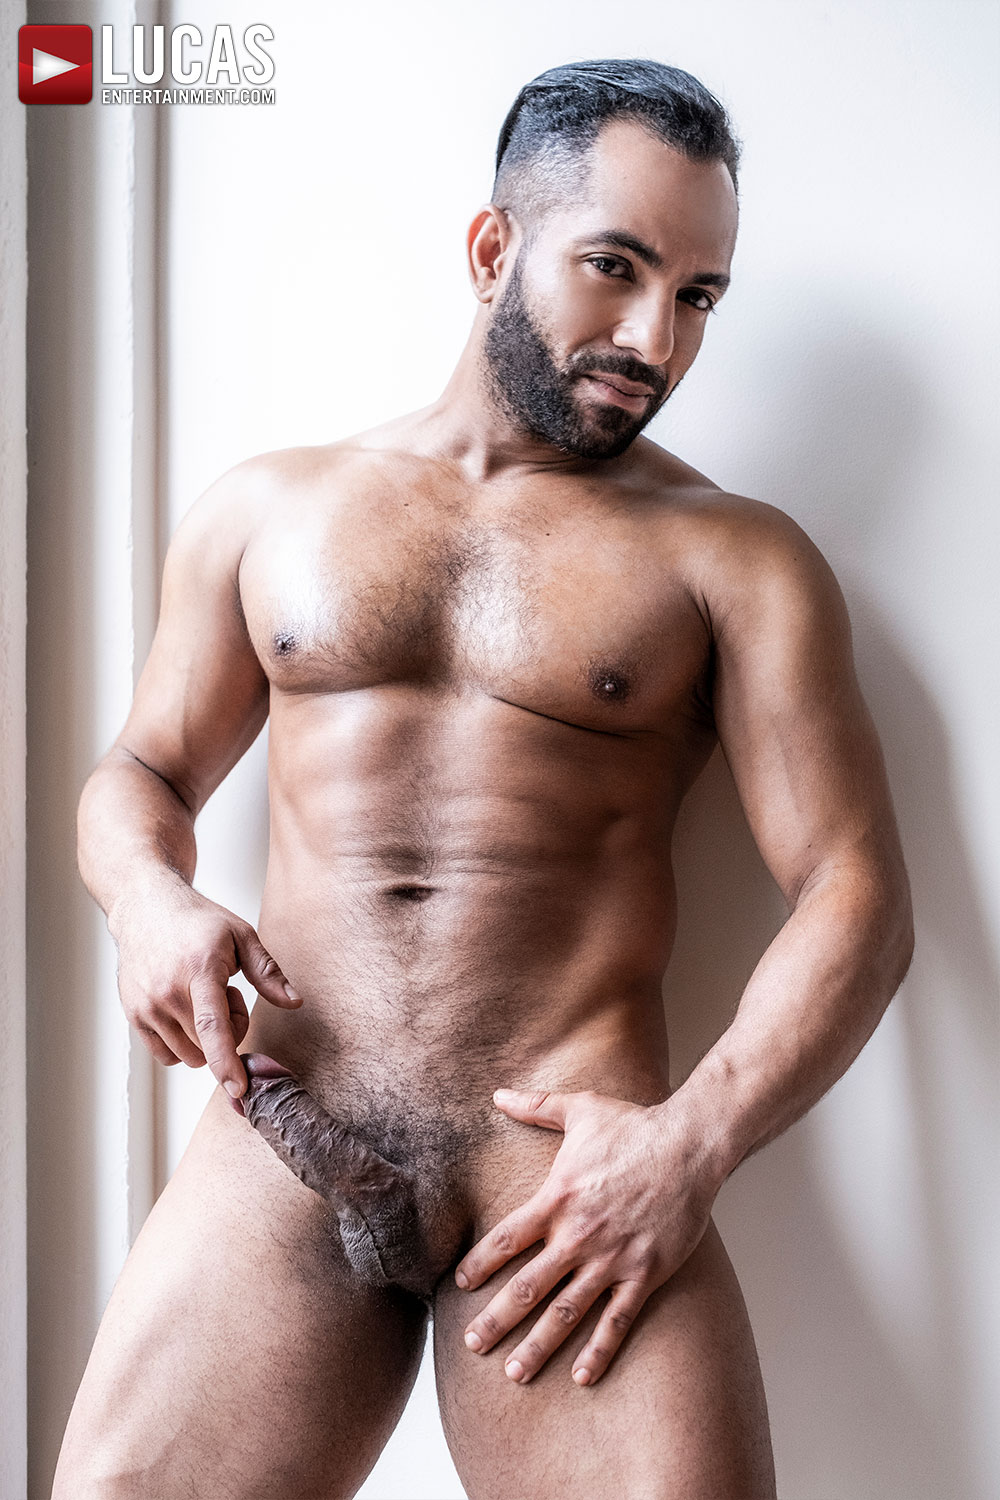 Sergio - Gay Model - Lucas Entertainment